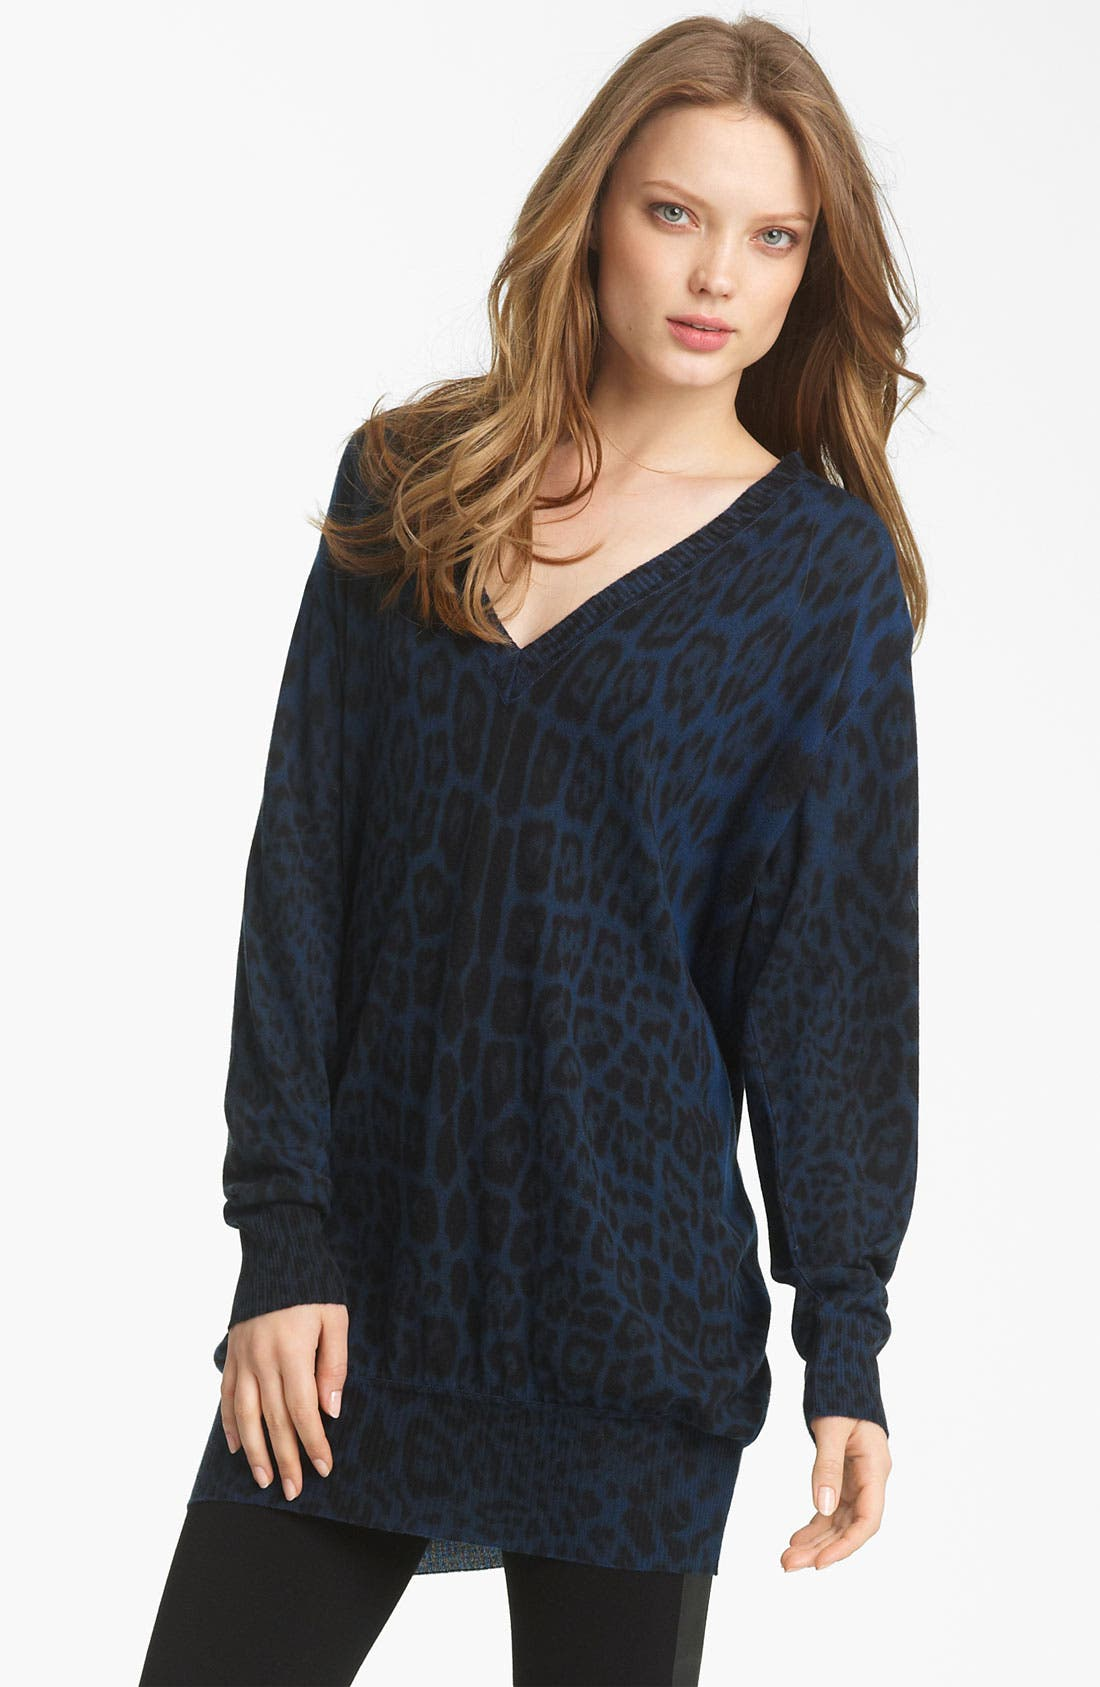 Main Image - Roberto Cavalli Oversized Knit Sweater